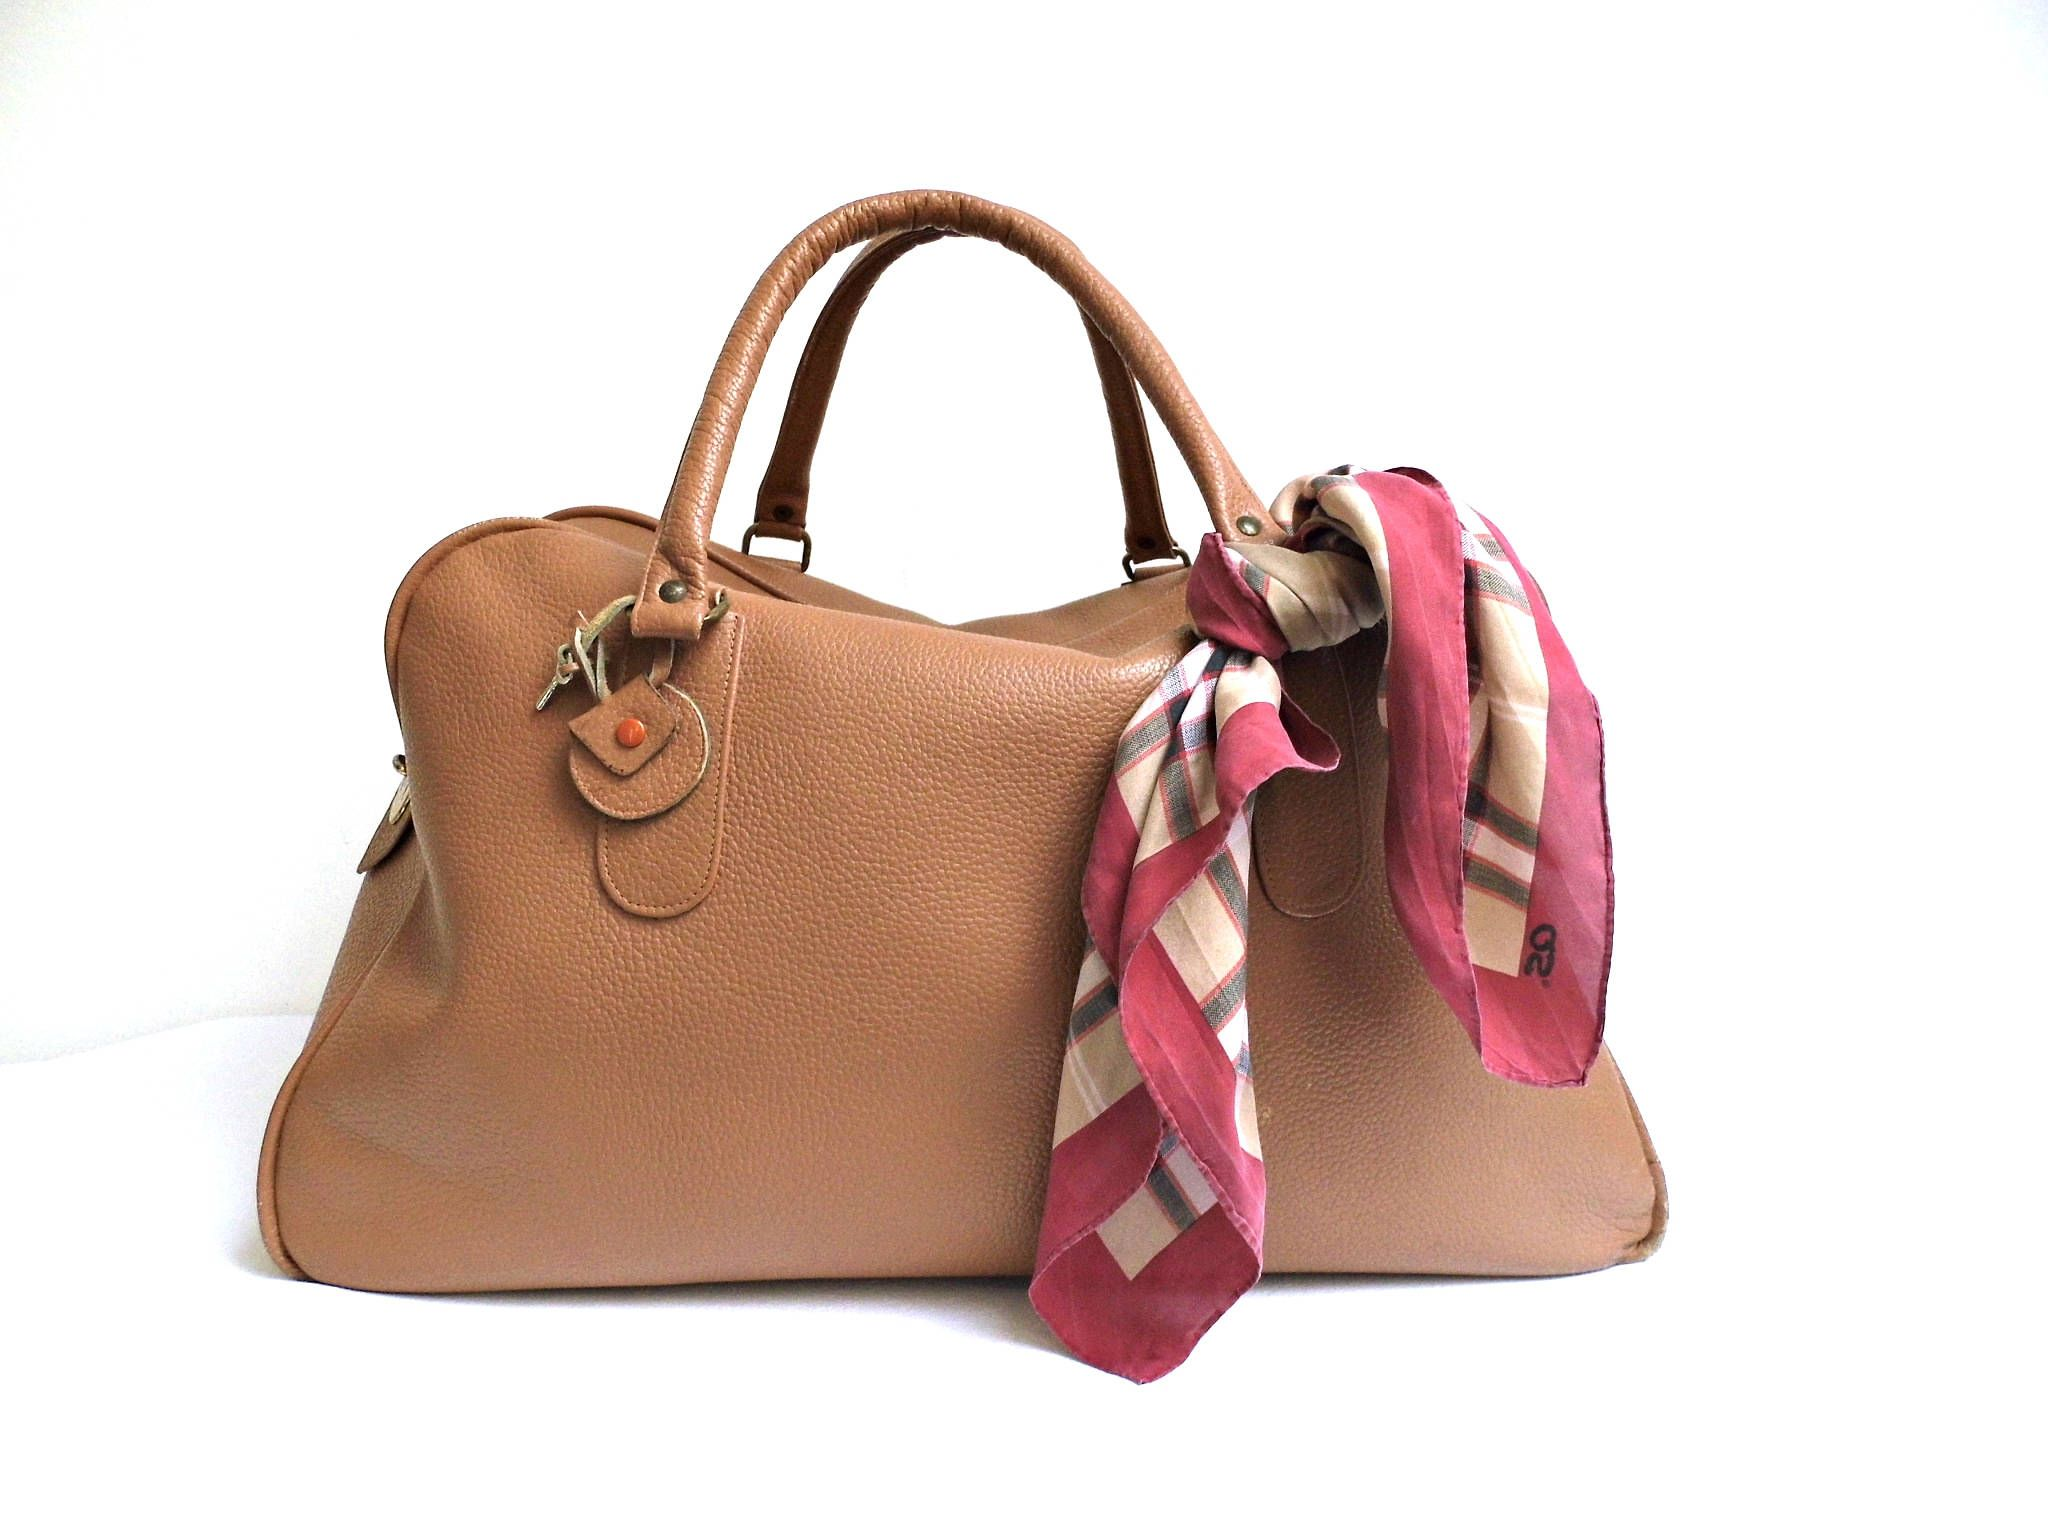 26415d9888 Womens Leather Travel Duffle Bag